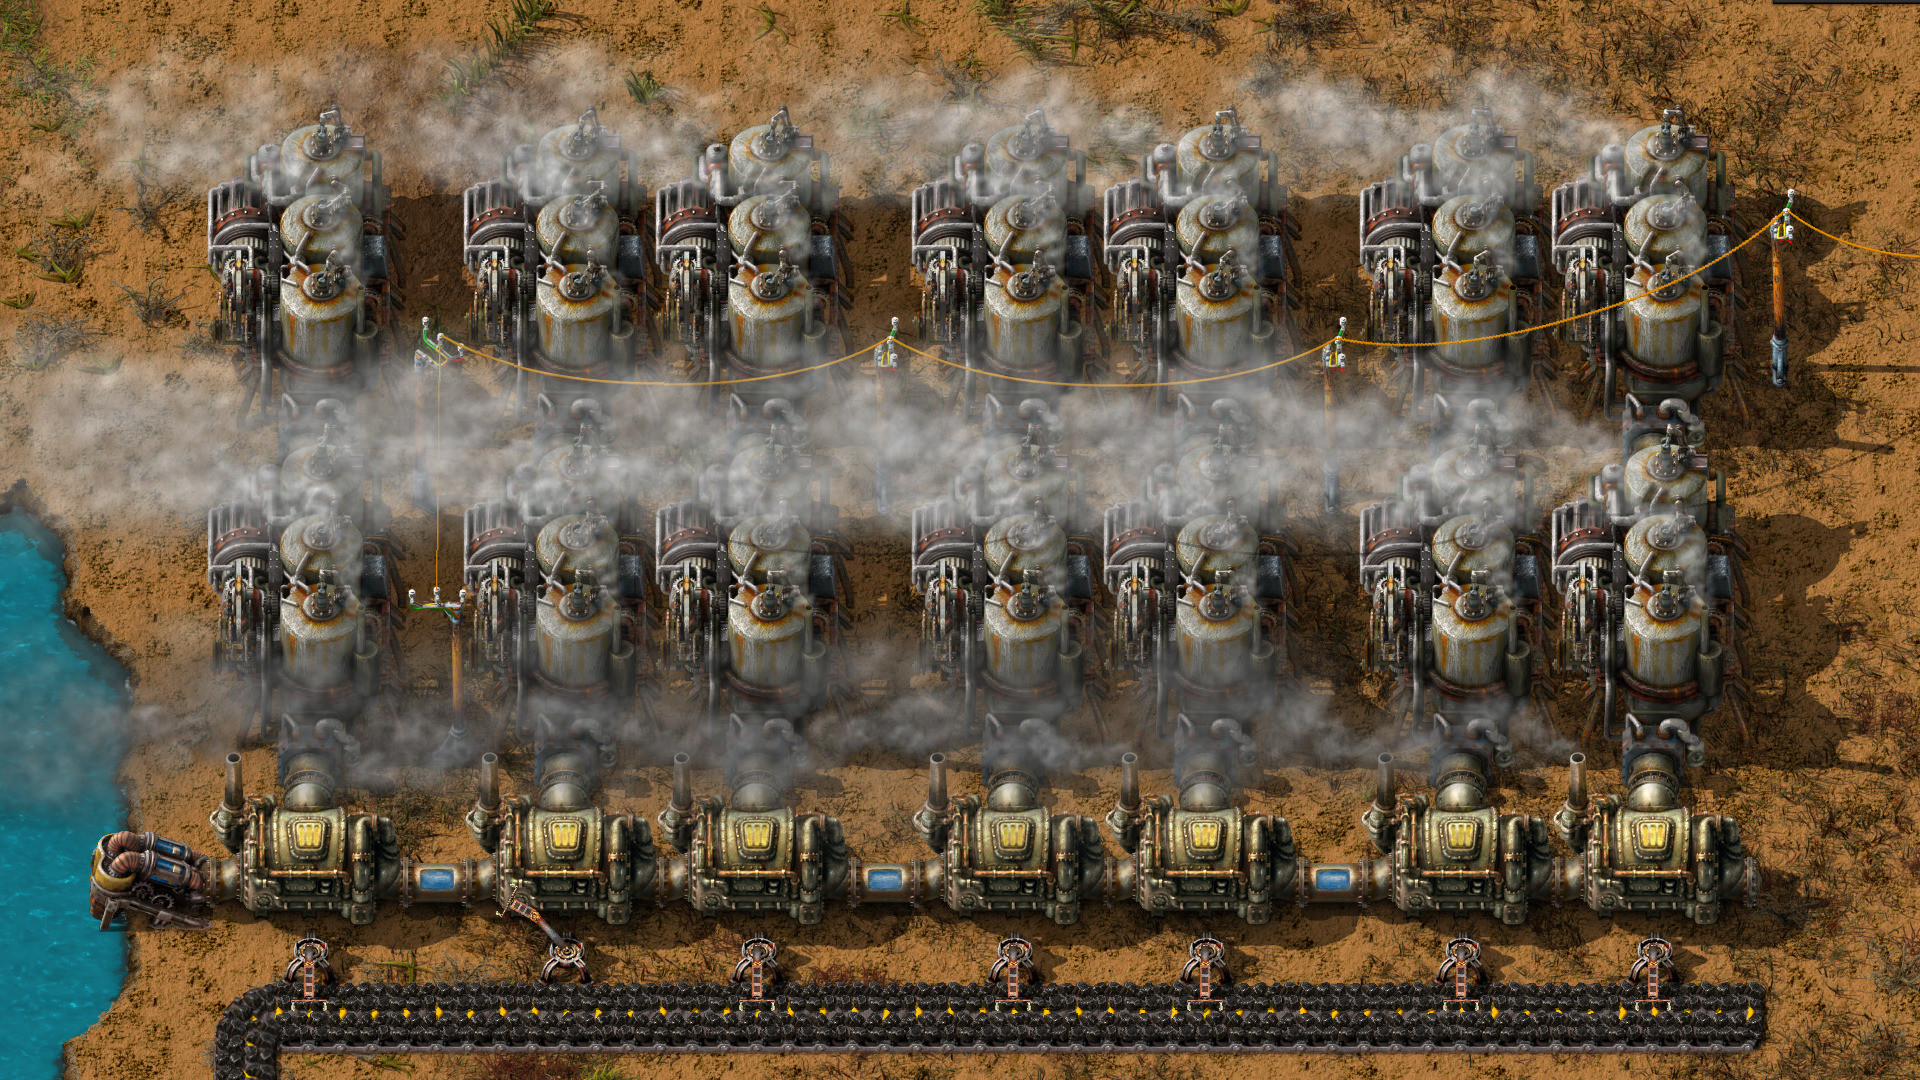 Factorio is getting an expansion